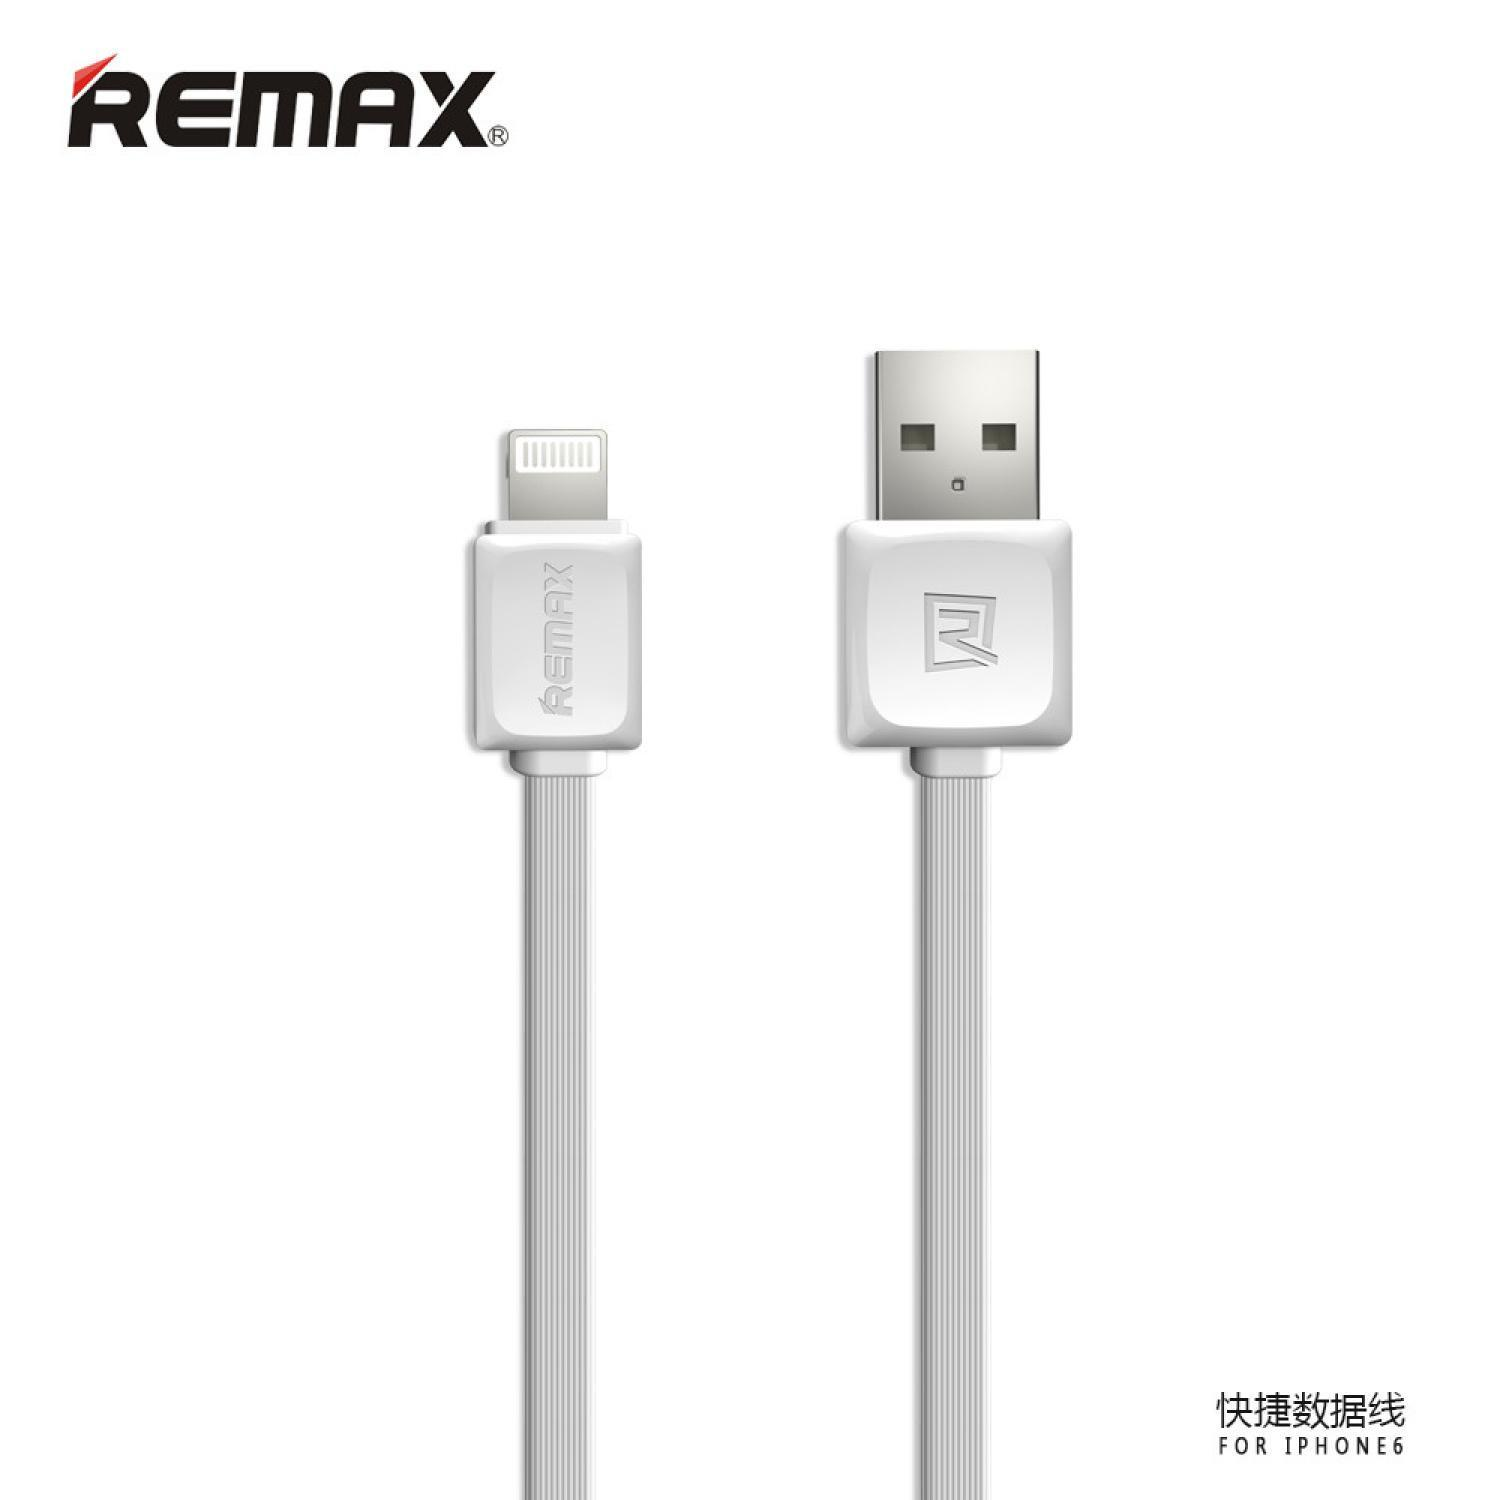 Remax Fleet Speed Cable for Smartphone - RC-008